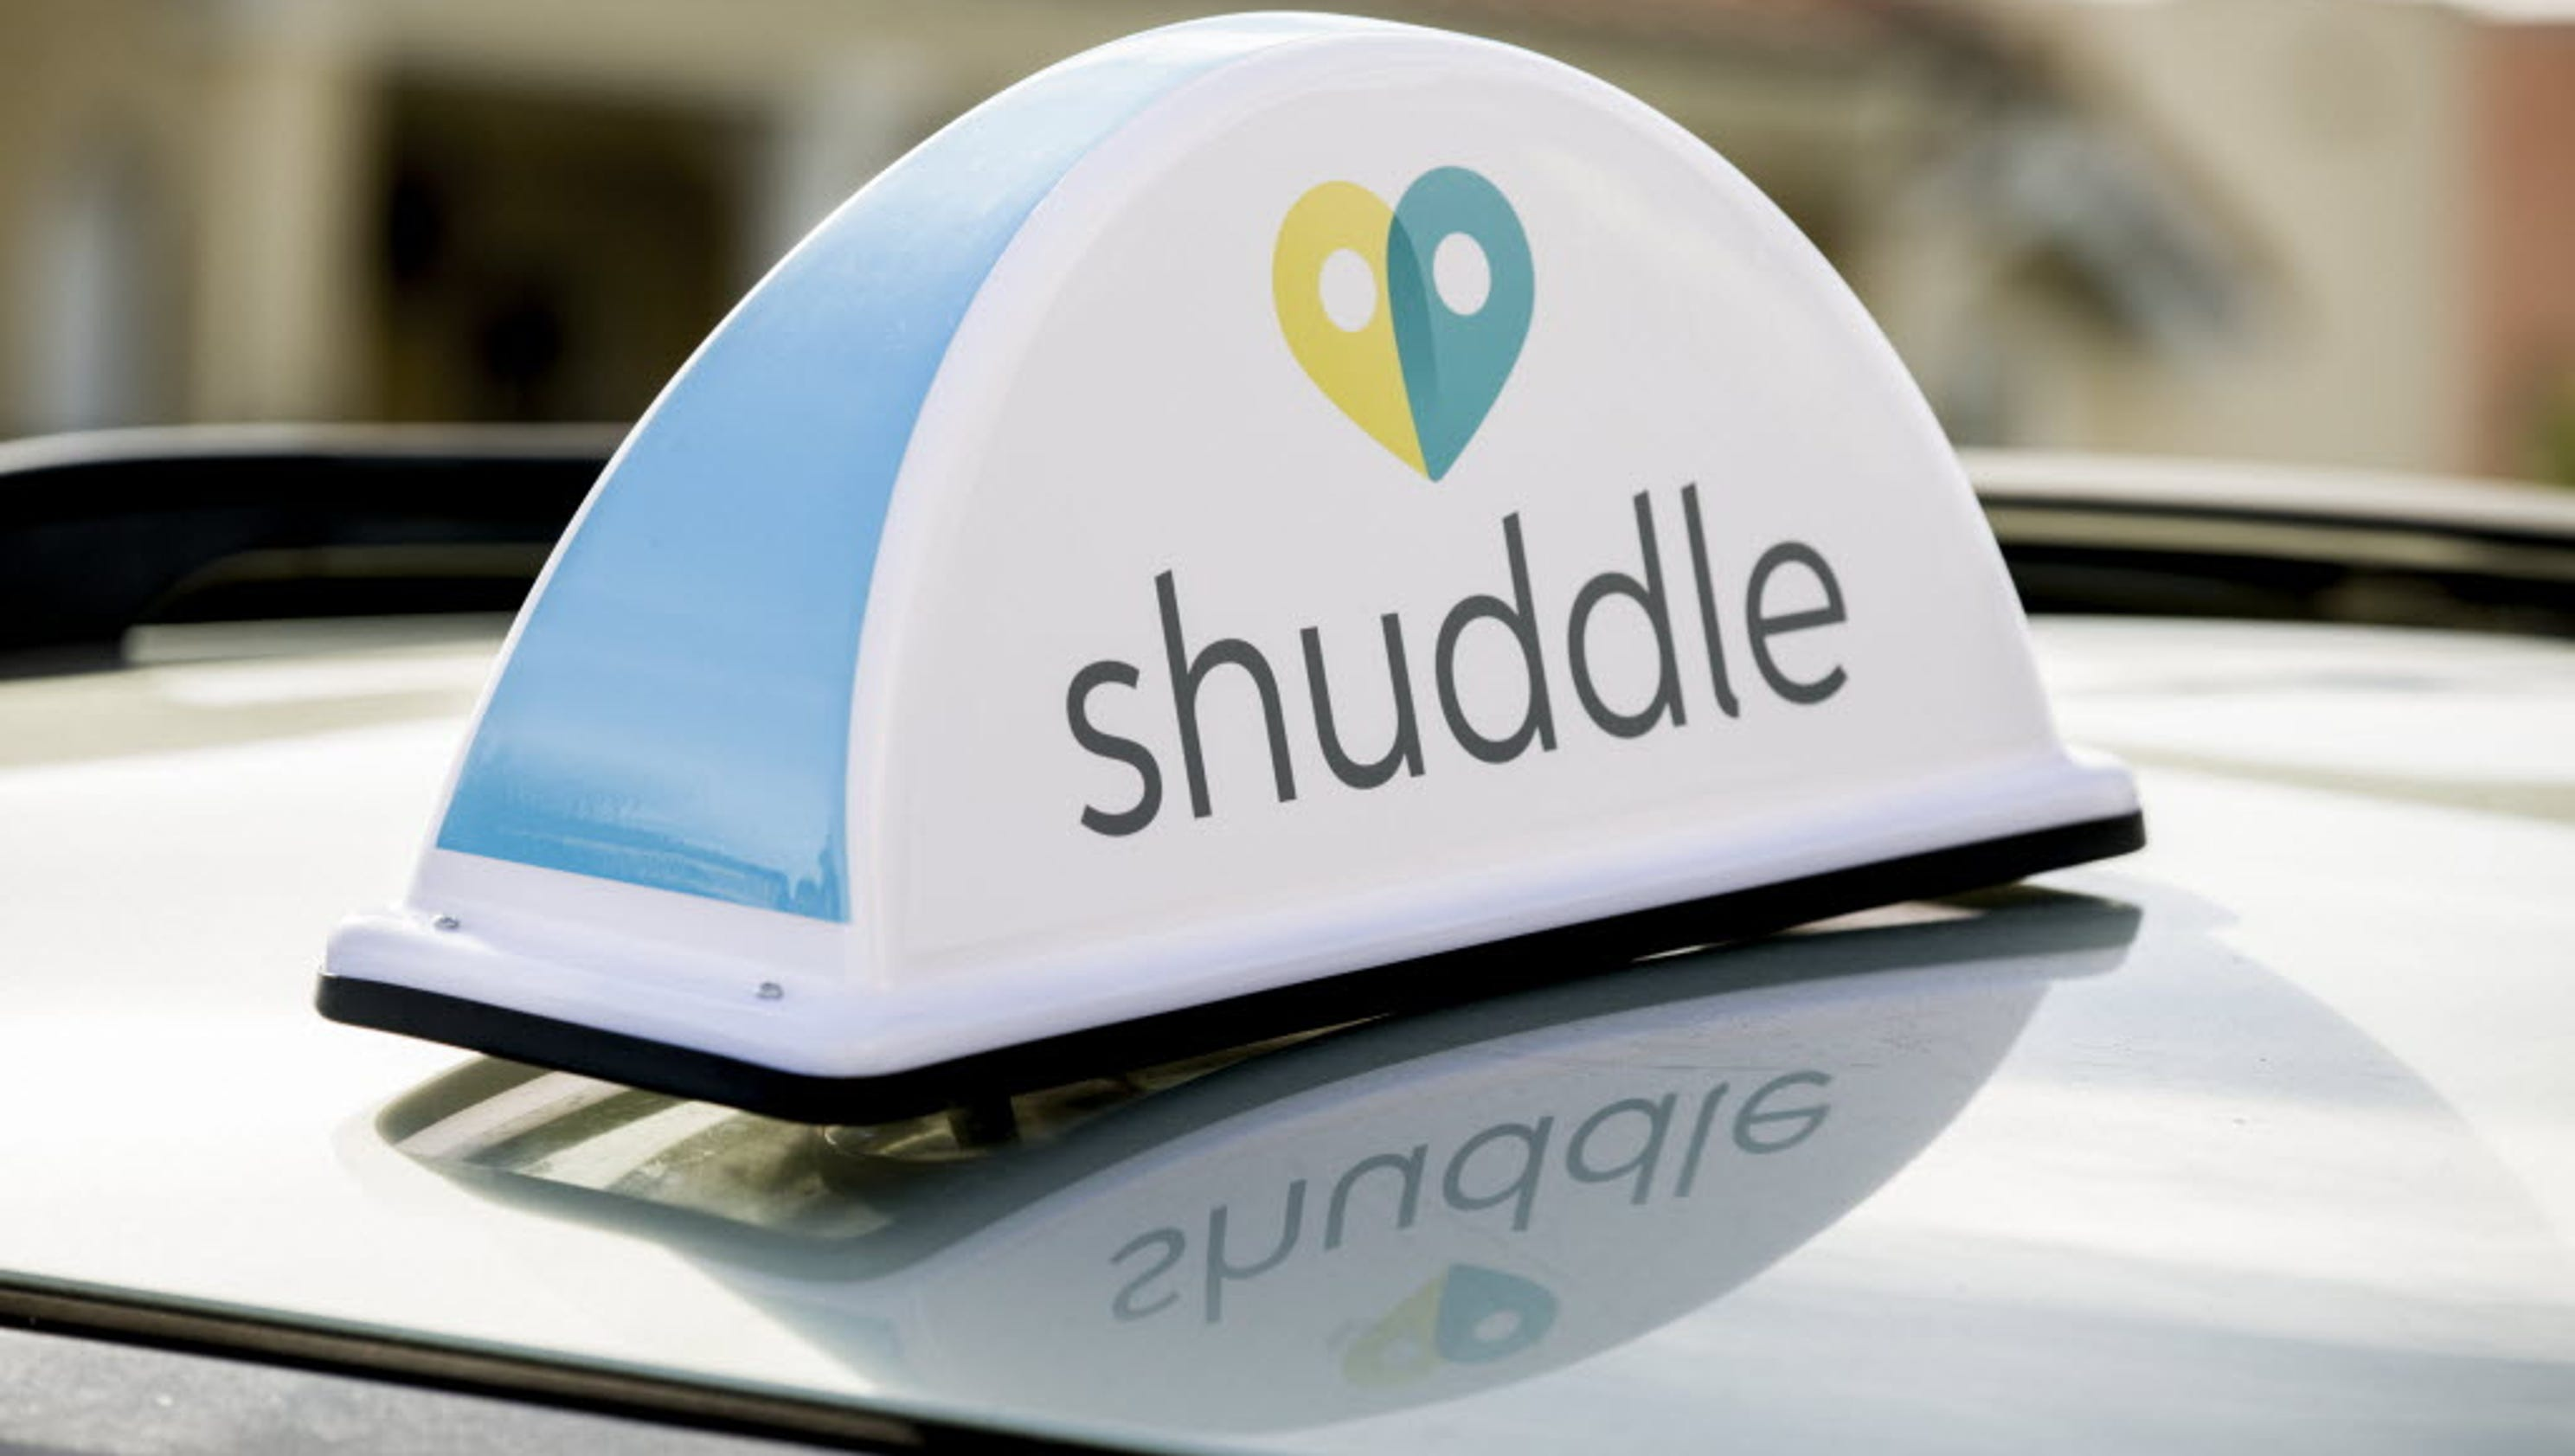 Uber for kids shuddle trips on calif child care rules uber for kids shuddle trips on calif child care rules 1betcityfo Images